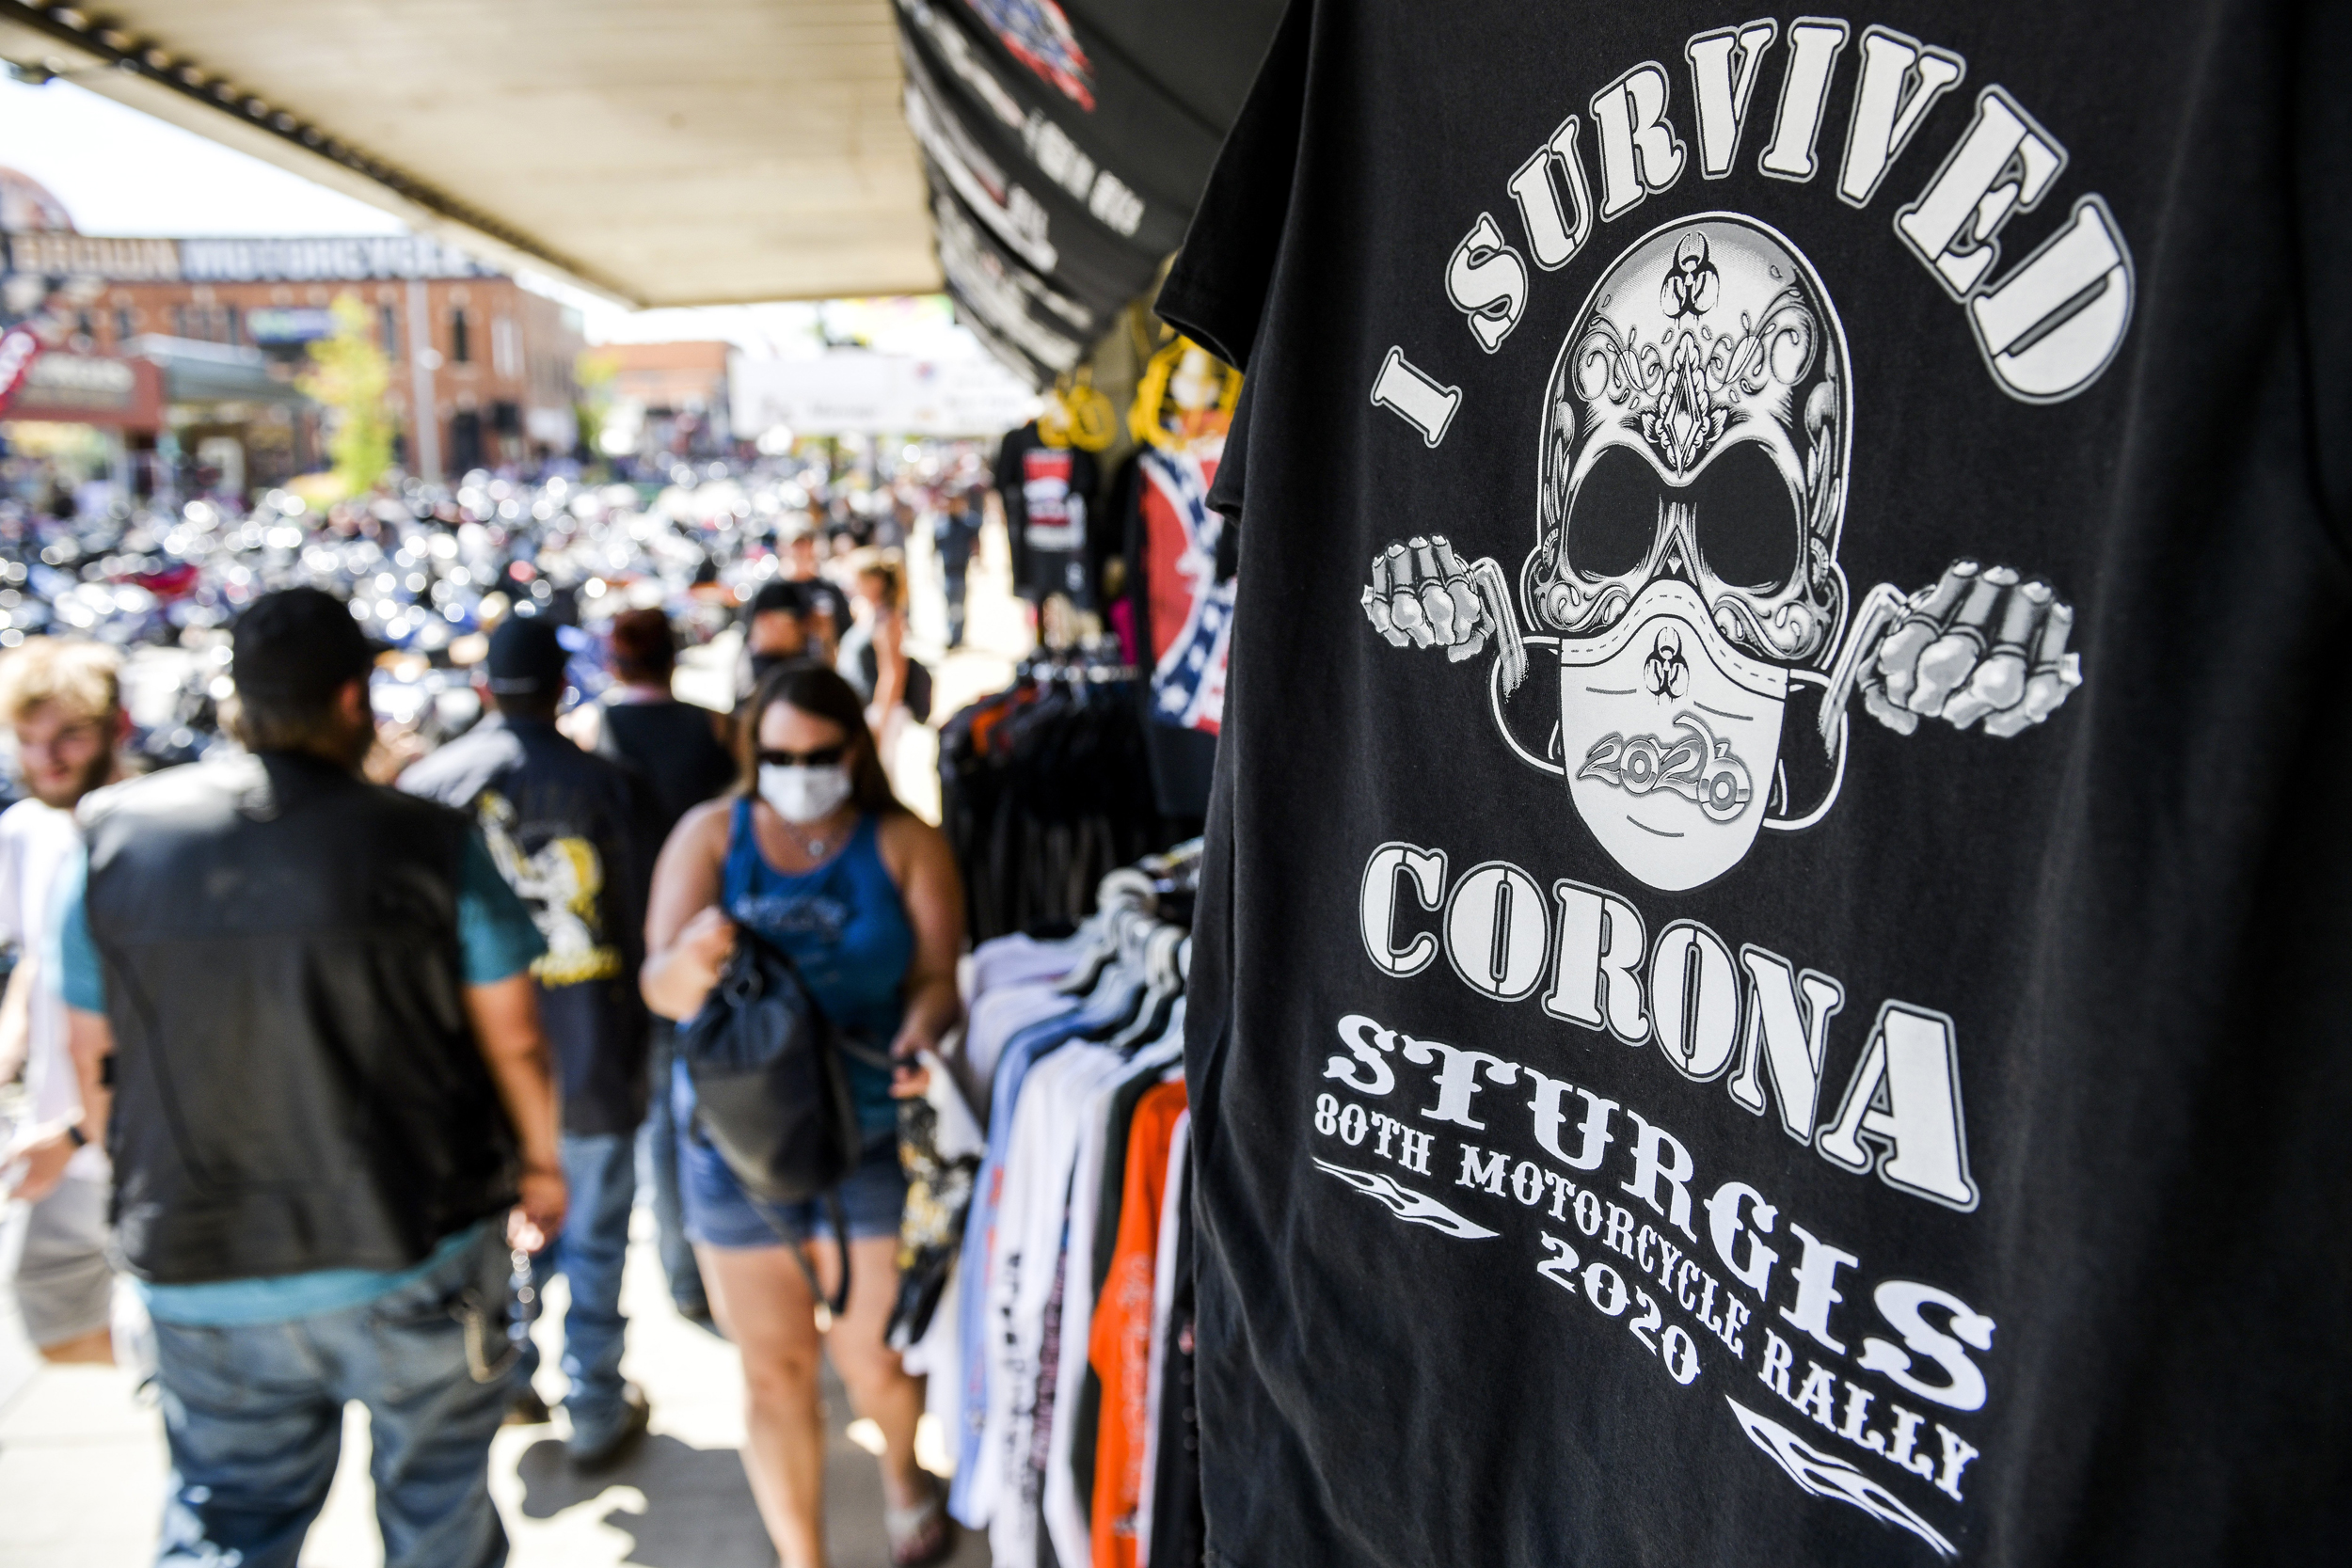 The Kentucky Sturgis Bike Rally attracts thousands of riders